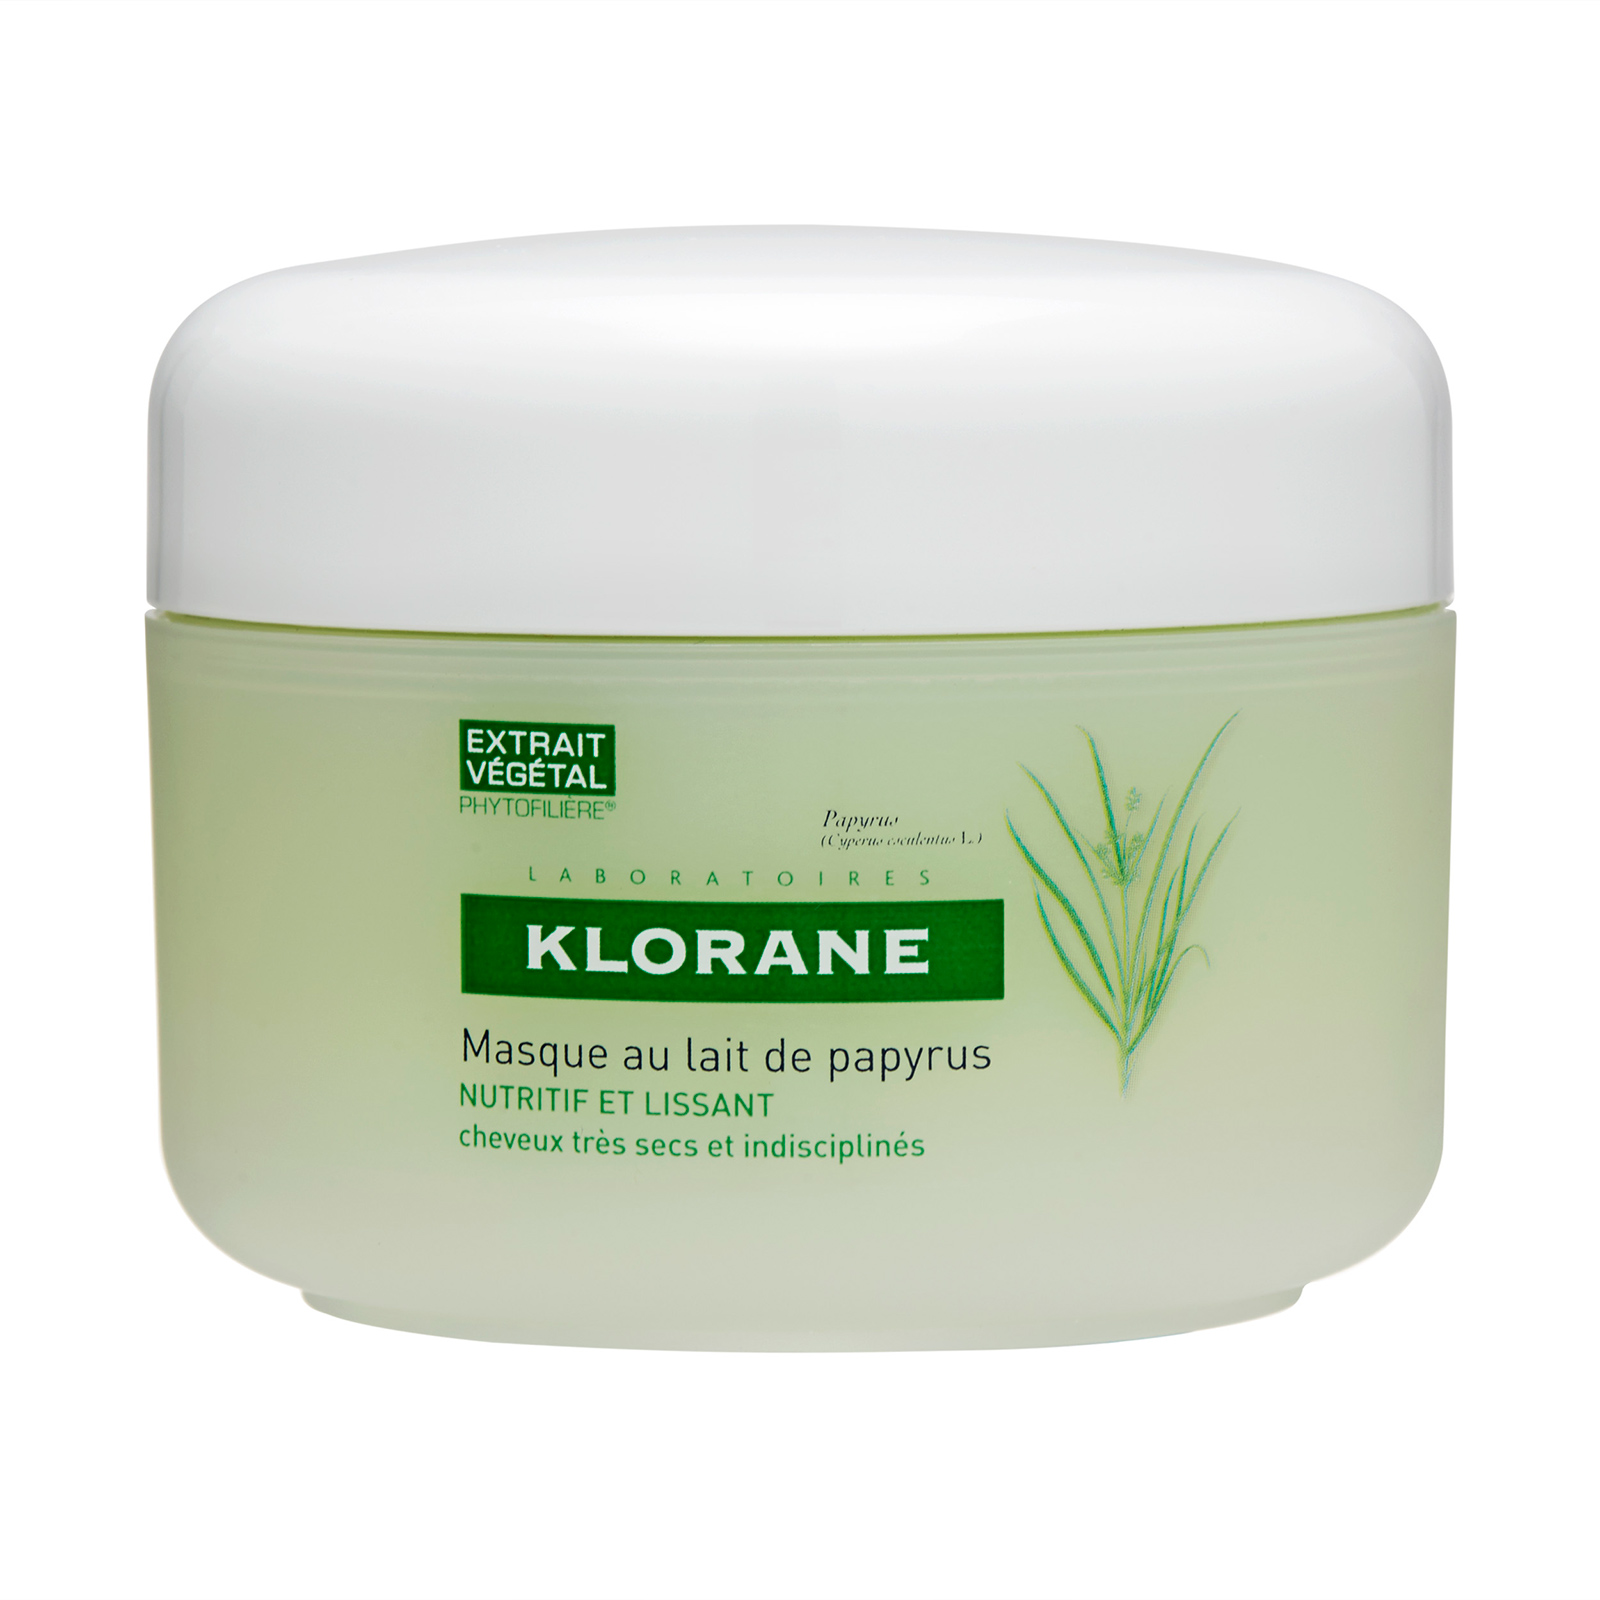 Klorane  Mask With Papyrus Milk - Nourishing & Smoothing (Dry and Unruly Hair) 5.07oz, 150ml